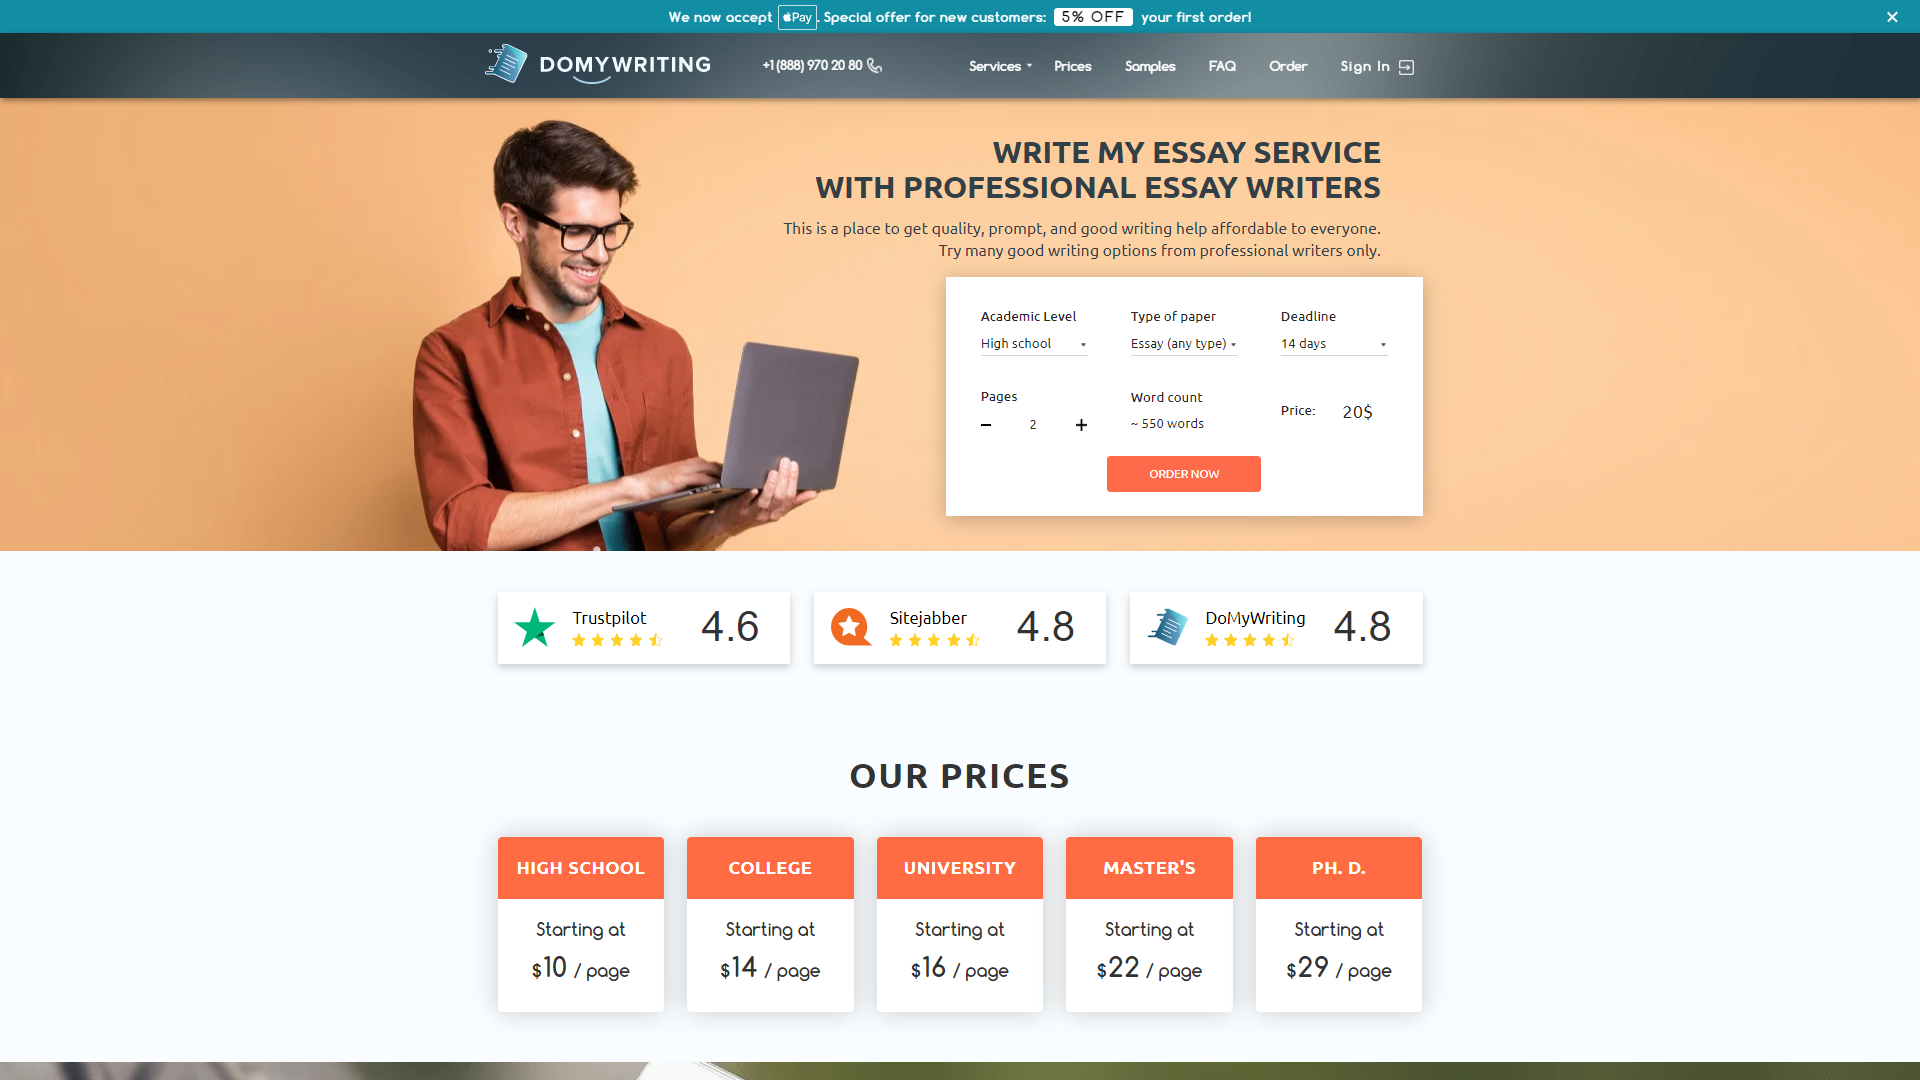 DoMyWriting Review for Customers